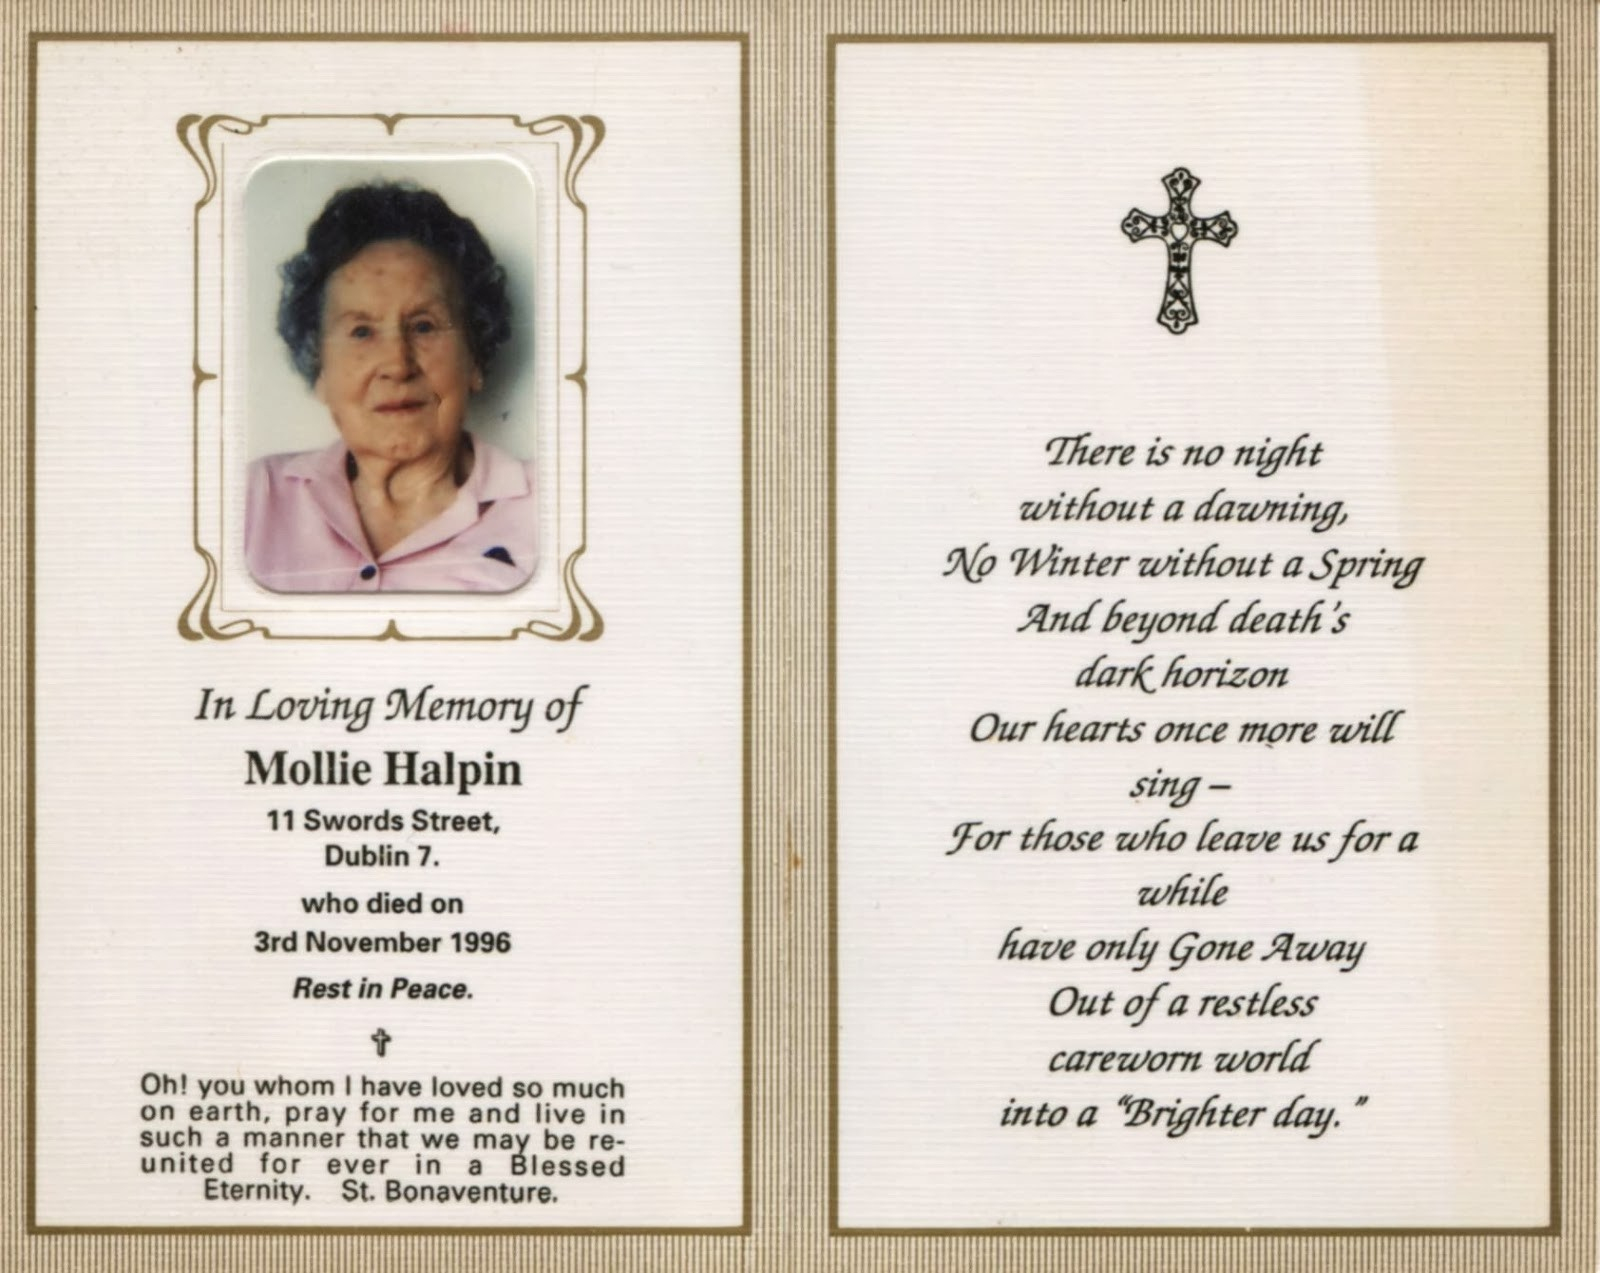 011 Free Printable Funeral Prayer Card Template Memorial Cards Of On - Free Printable Memorial Card Template